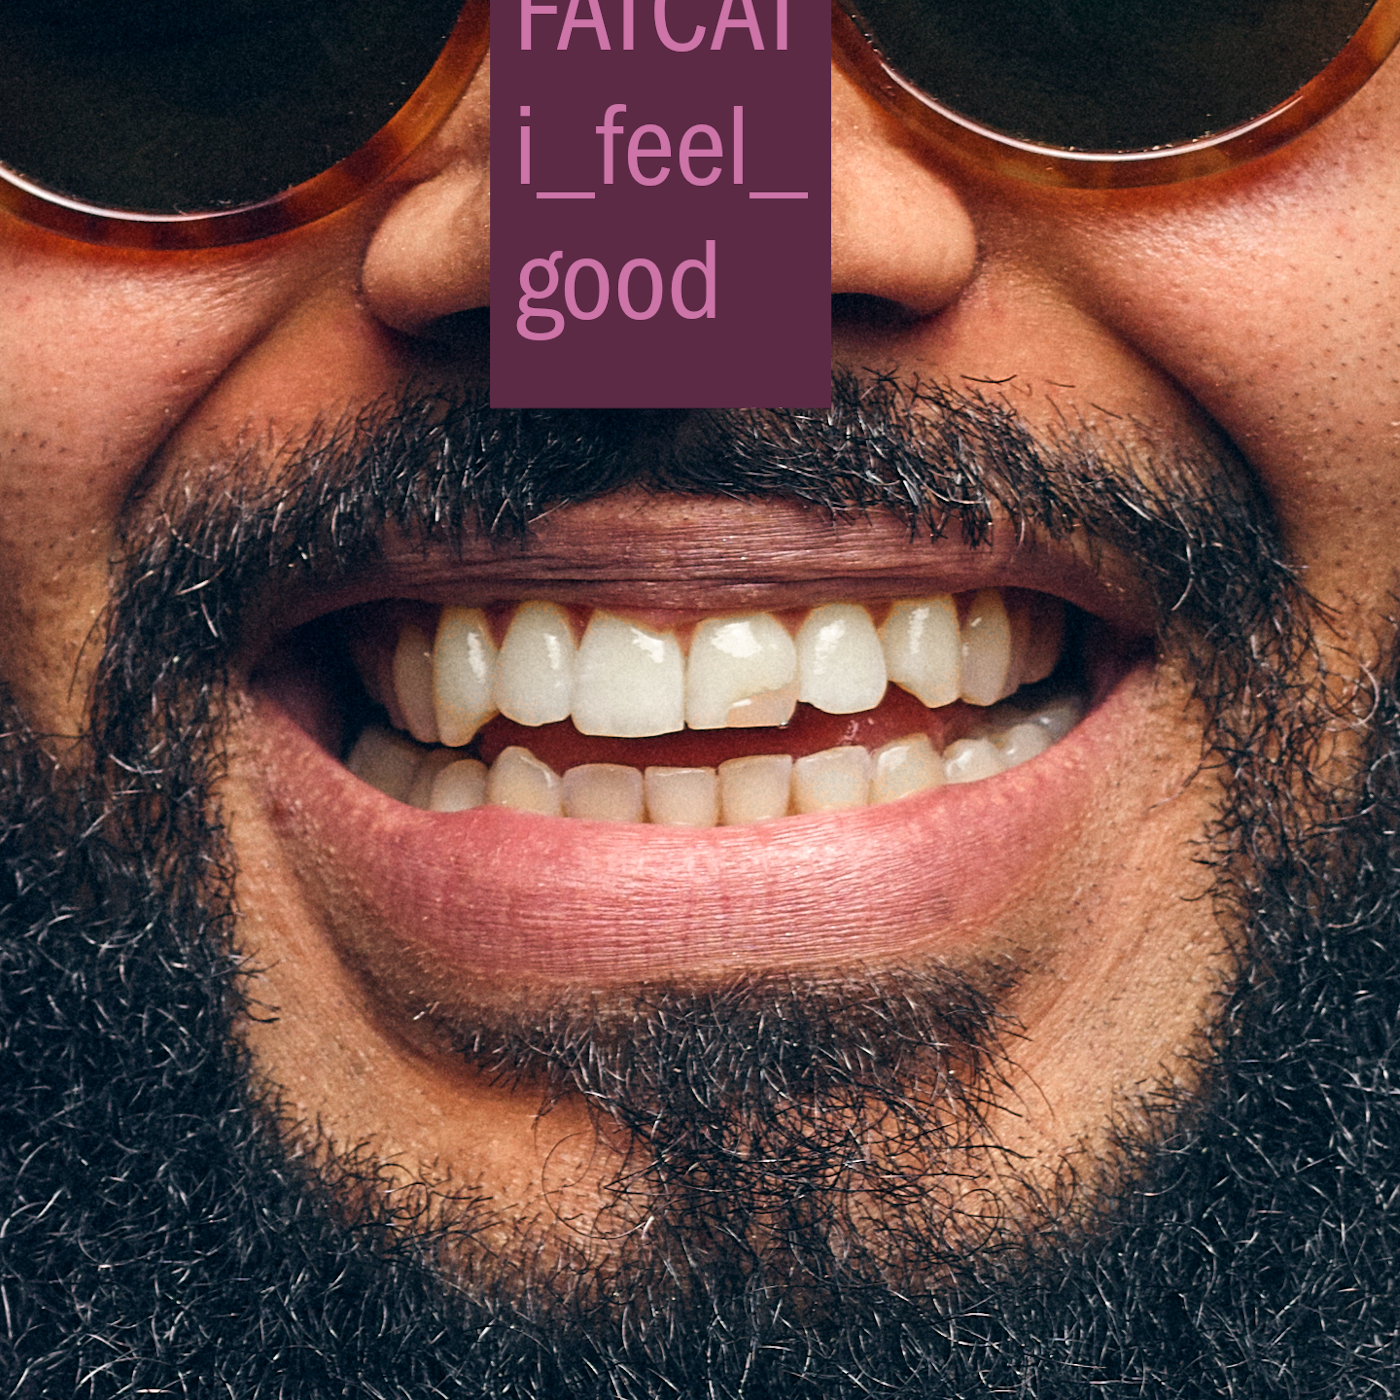 i_feel_good Single Cover 1400.png